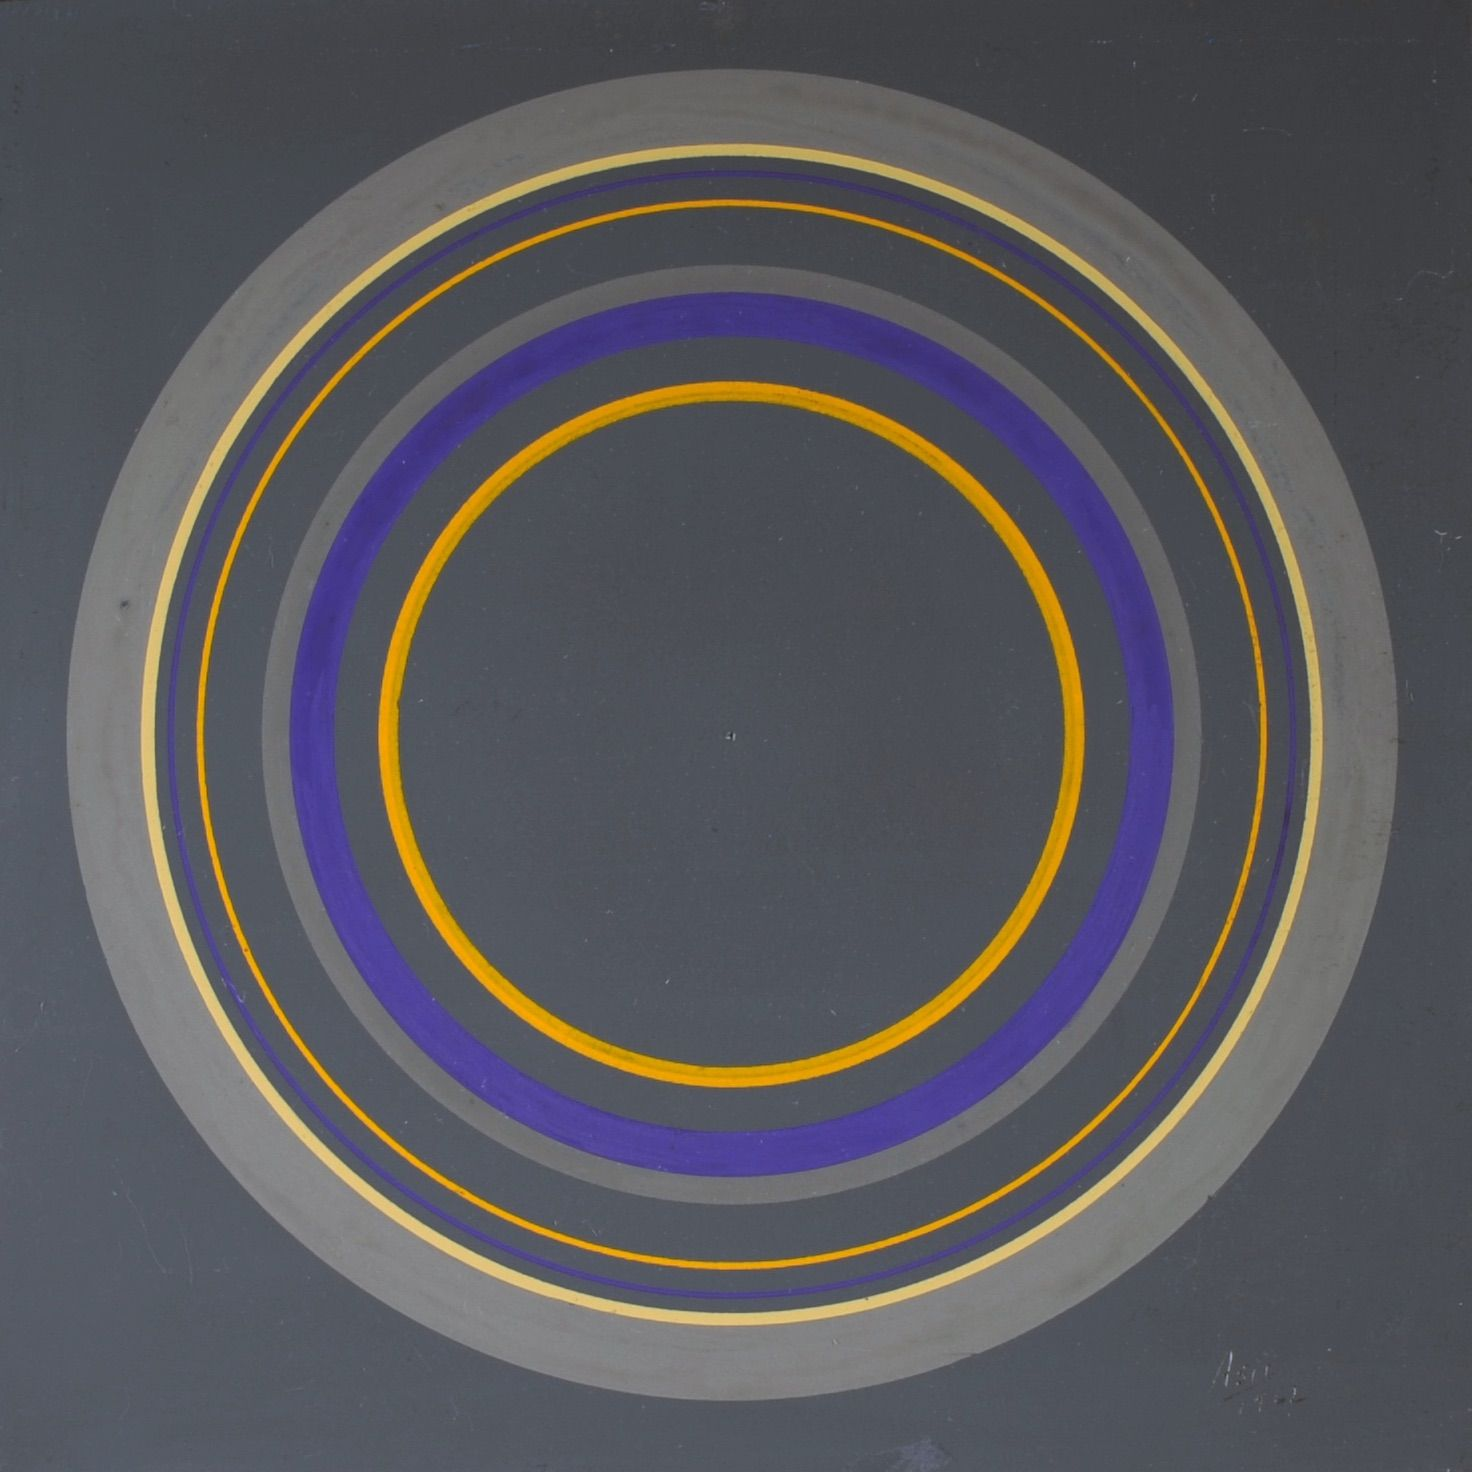 Antonio Asis,Untitled from the series Cercles Concentriques, 1962, Gouache on cardboard,7 1/2 x 7 1/2 in. (19.1 x 19 cm.)